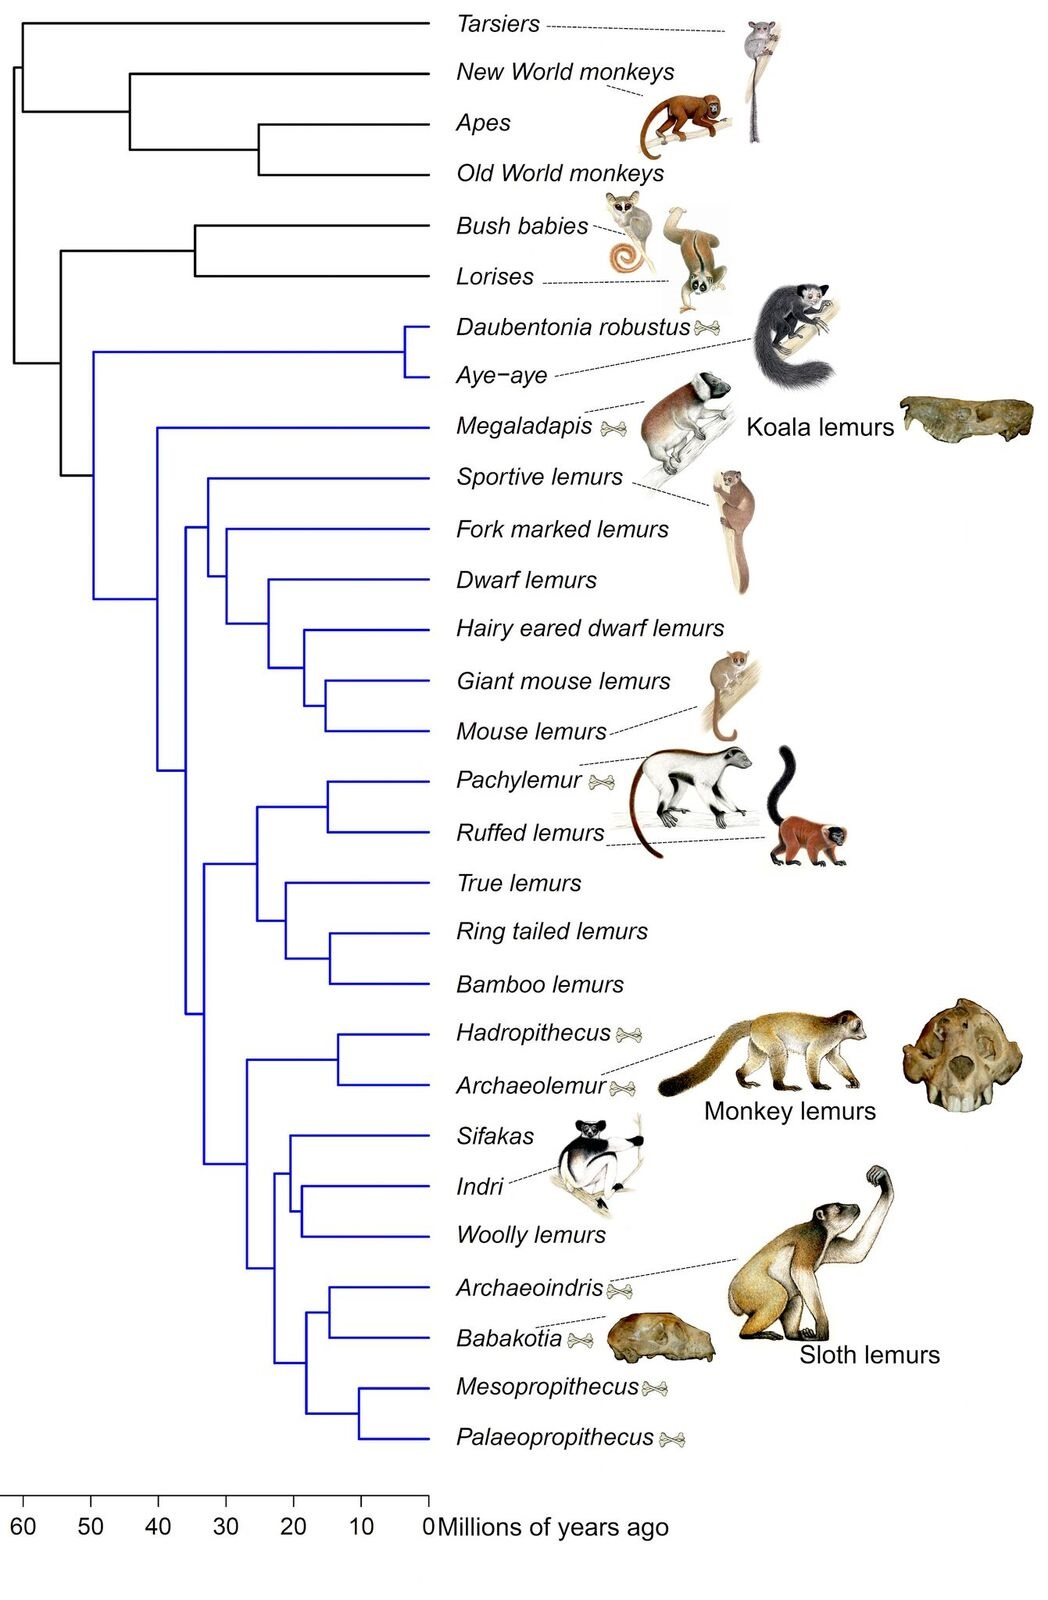 Illustration of primate evolutionary tree. Branches labelled in blue are lemurs, and names with adjacent crossbones are extinct lemur groups. Representative illustrations of primates, including reconstructions of extinct lemurs, courtesy of S. Nash, used with permission. Photographs of skulls of extinct lemurs courtesy of James Herrera.